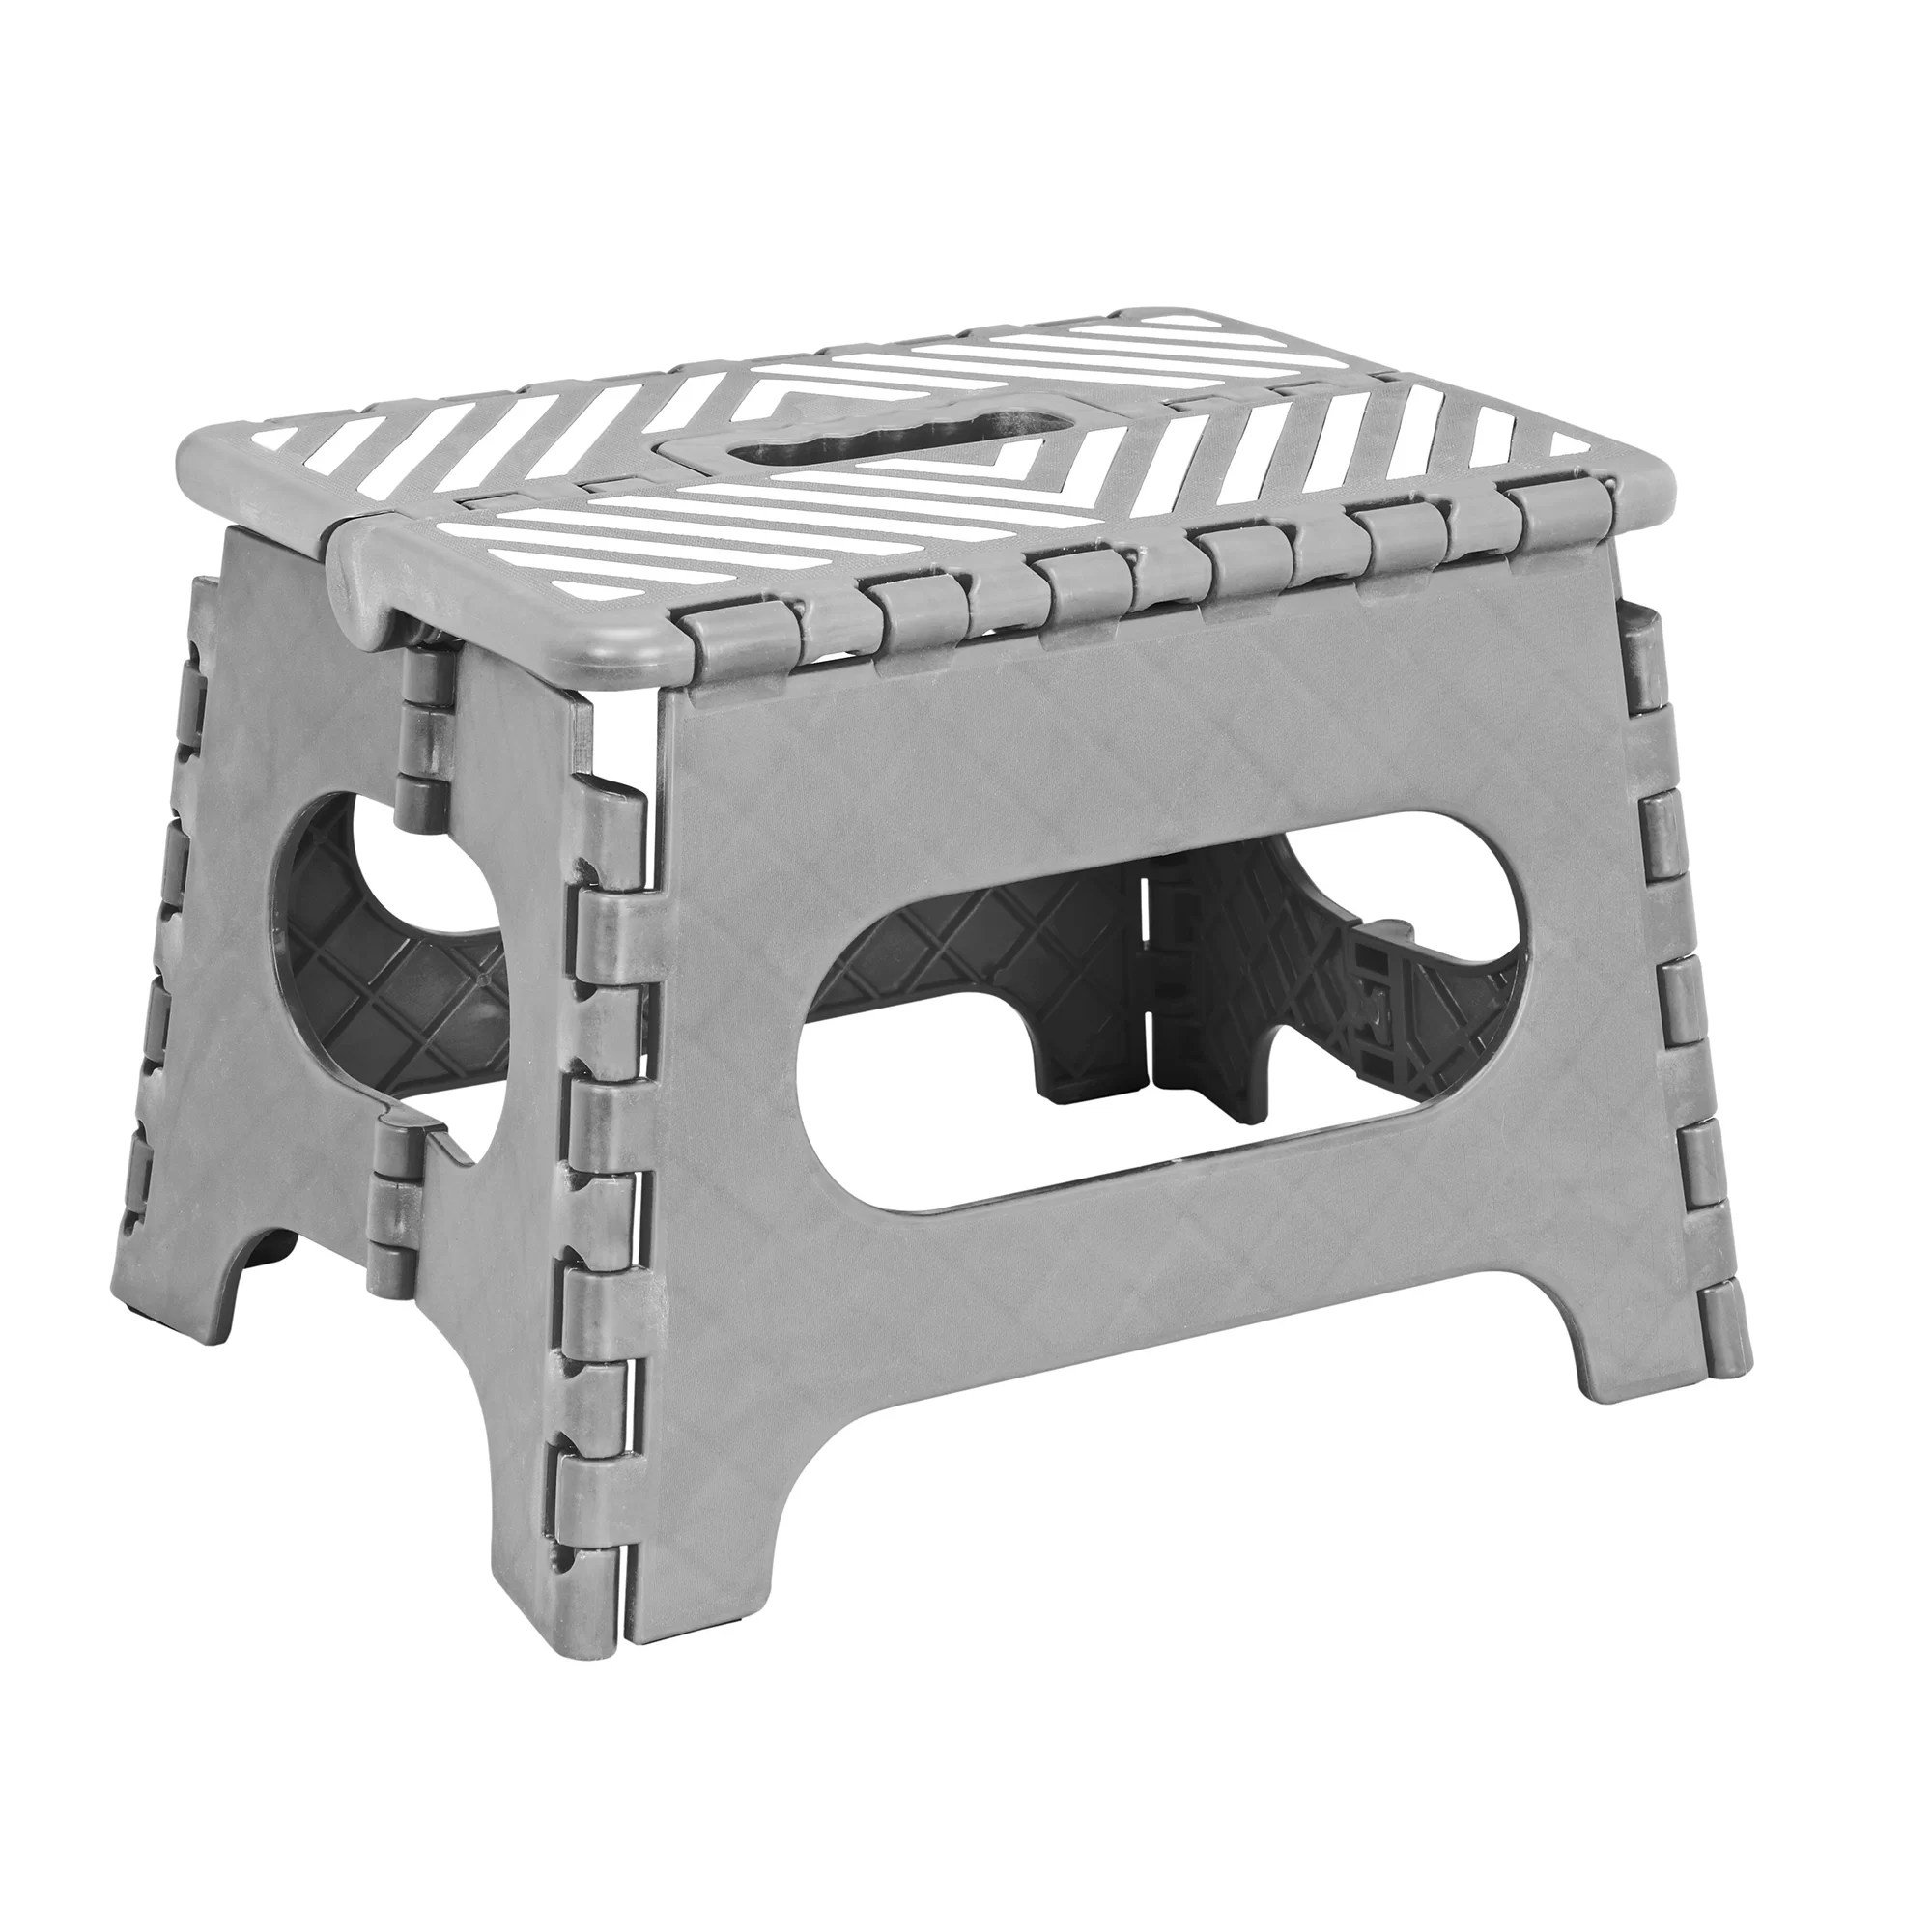 Metal Step Stool 1 Step Plastic Folding Step Stool With 200 Lb Load Capacity